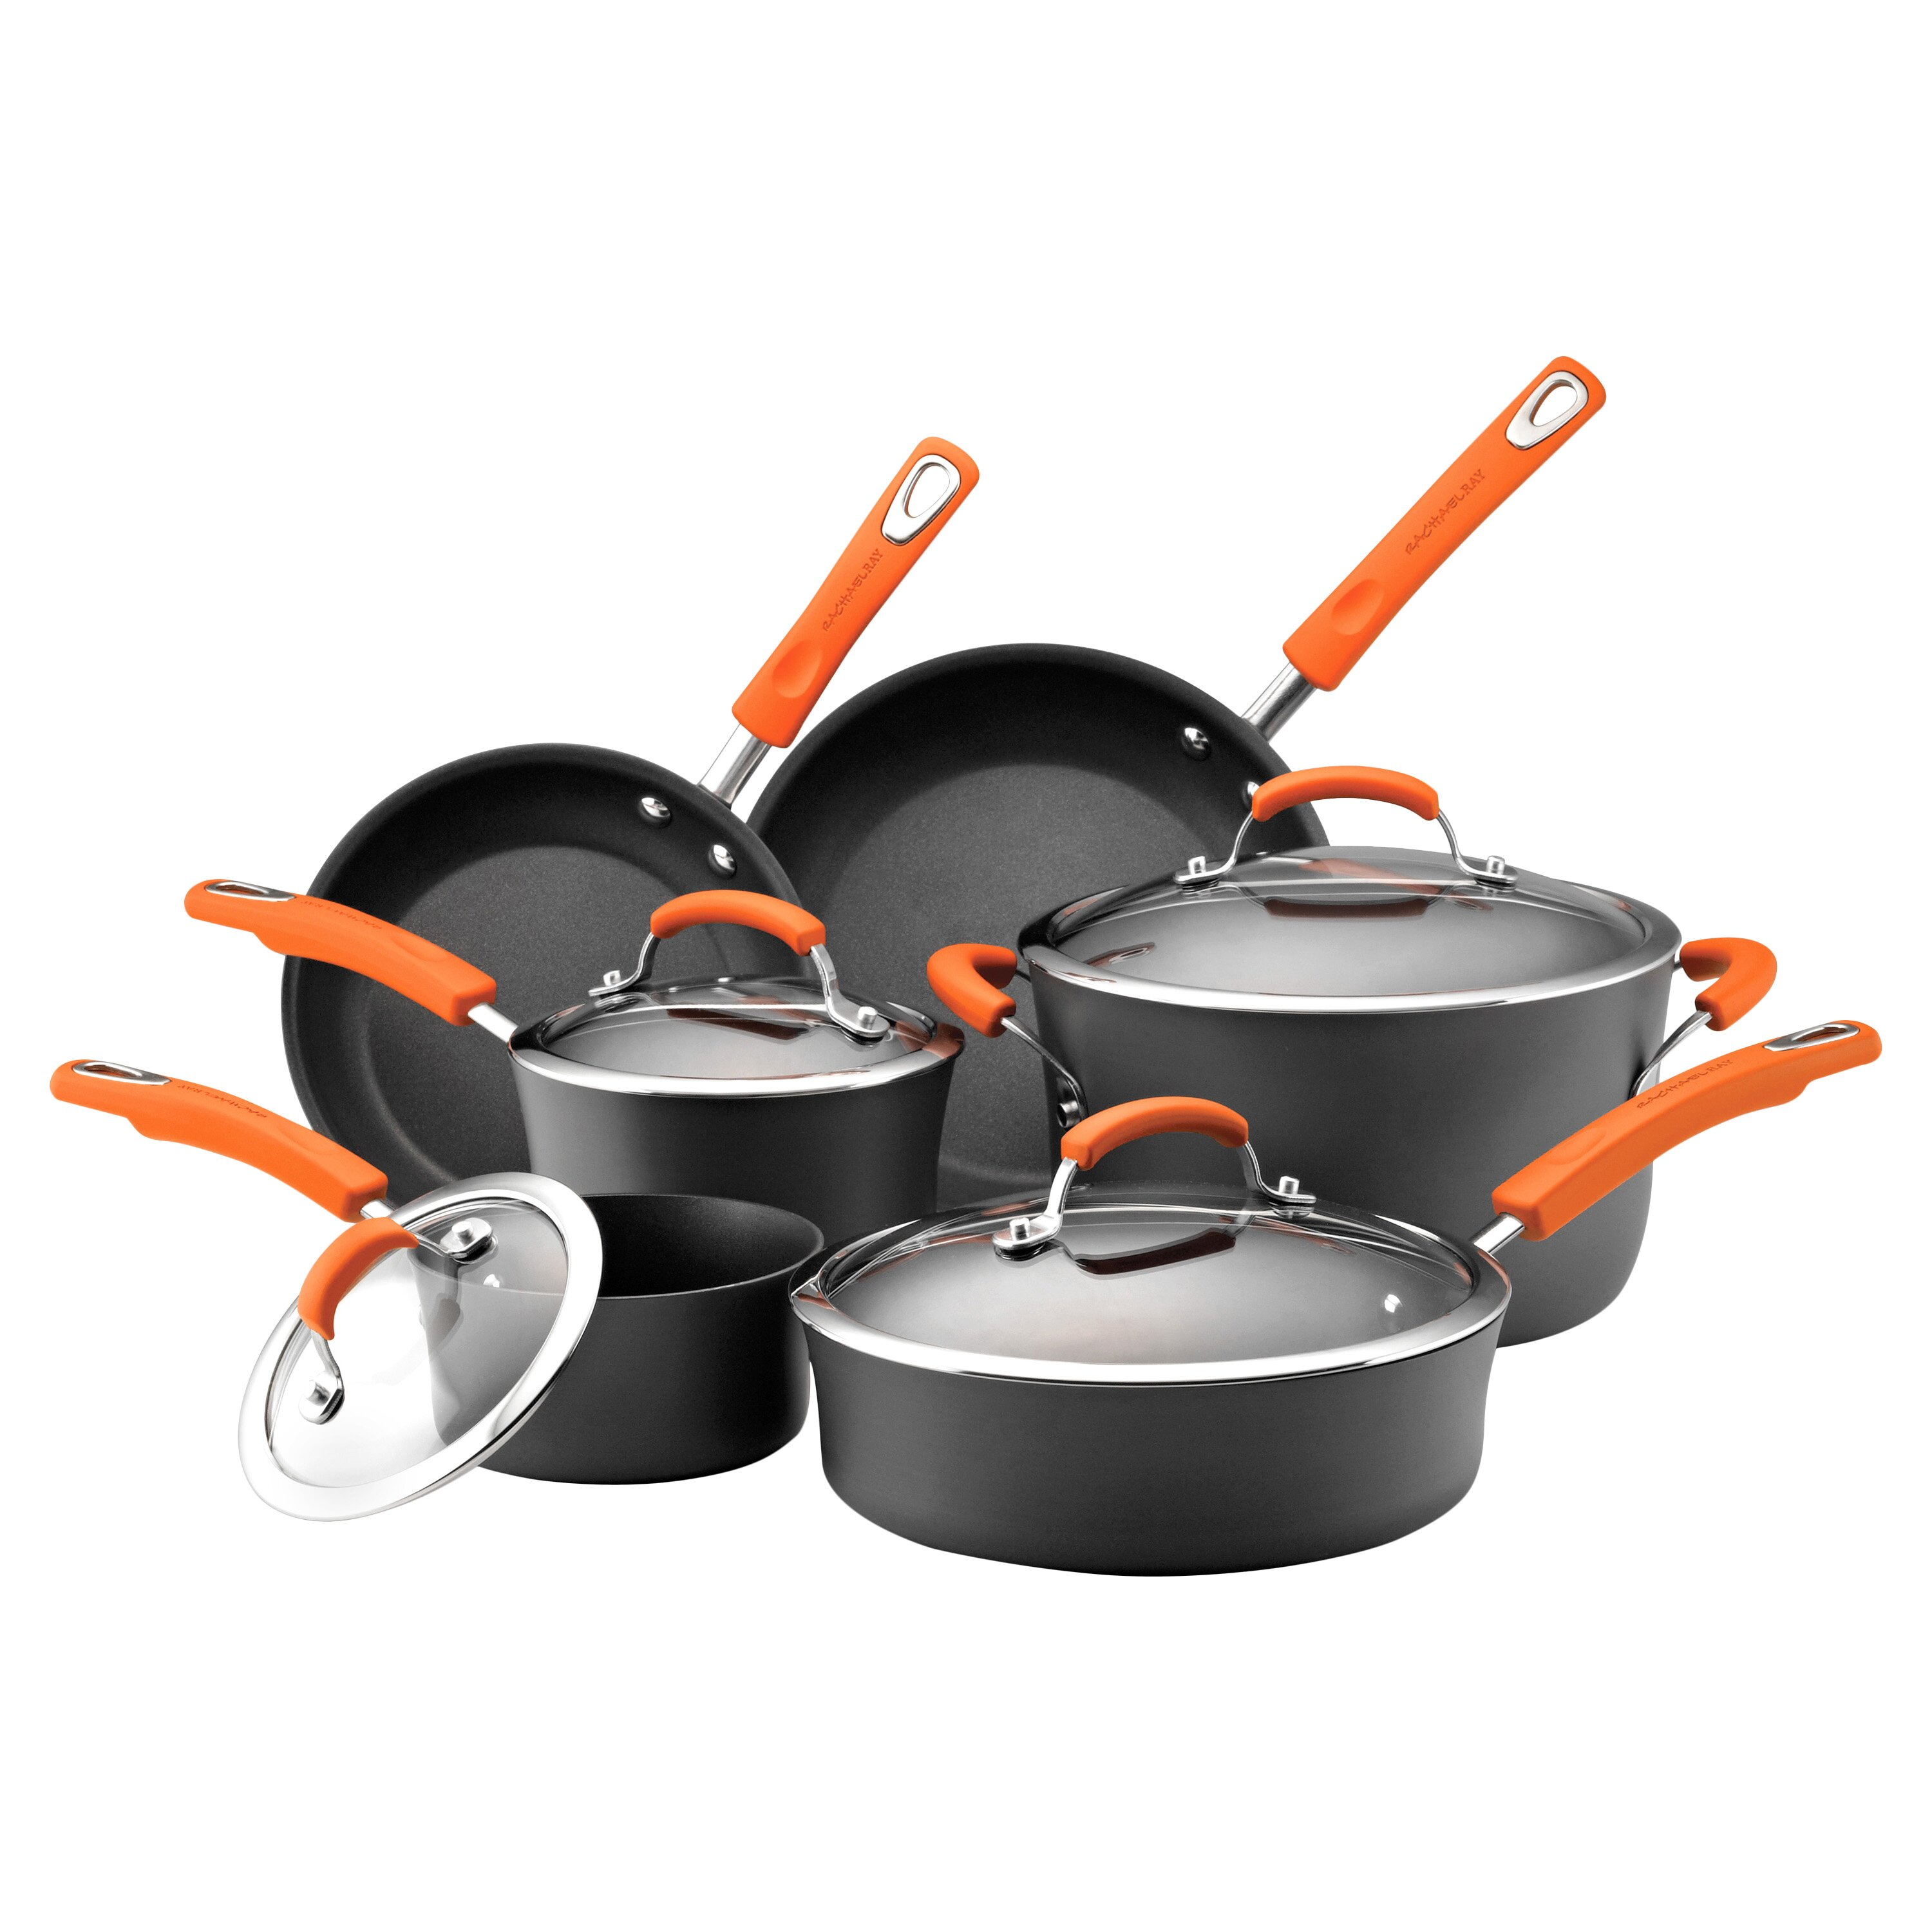 rachael ray hard anodized non stick 10 piece cookware set. Black Bedroom Furniture Sets. Home Design Ideas